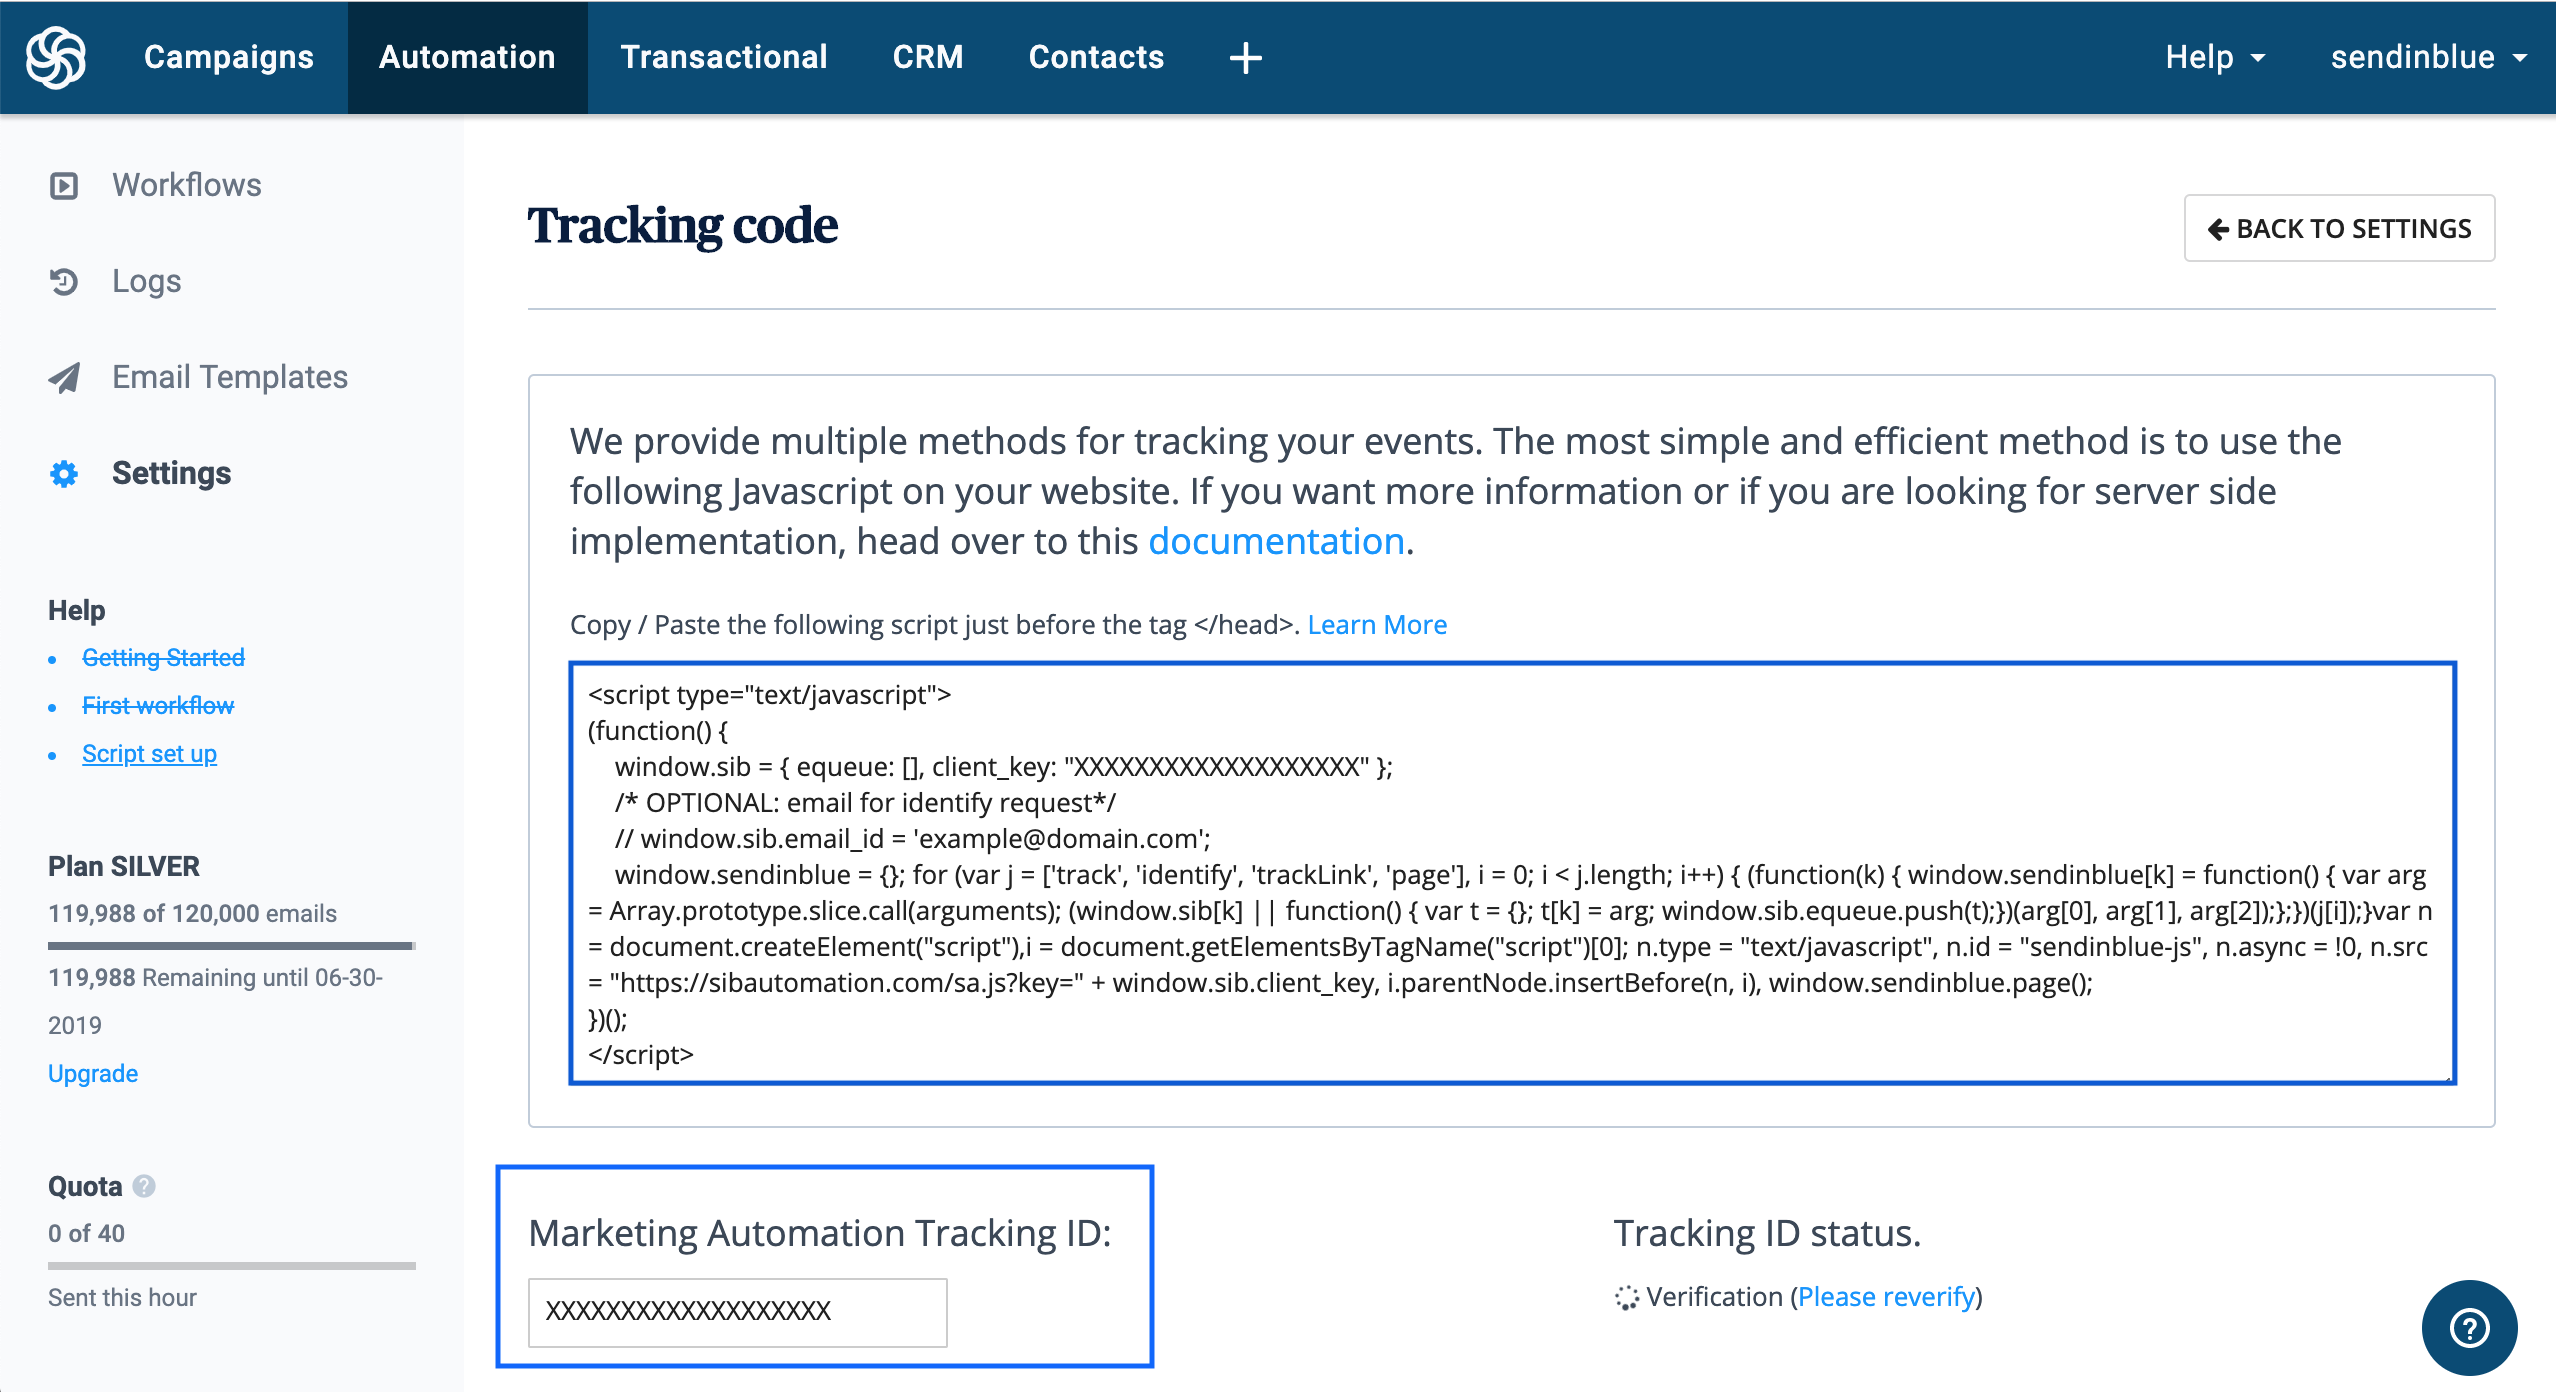 Get your Marketing Automation Tracking ID and Javascript Tracker Code from Automation > Settings > Tracking Code